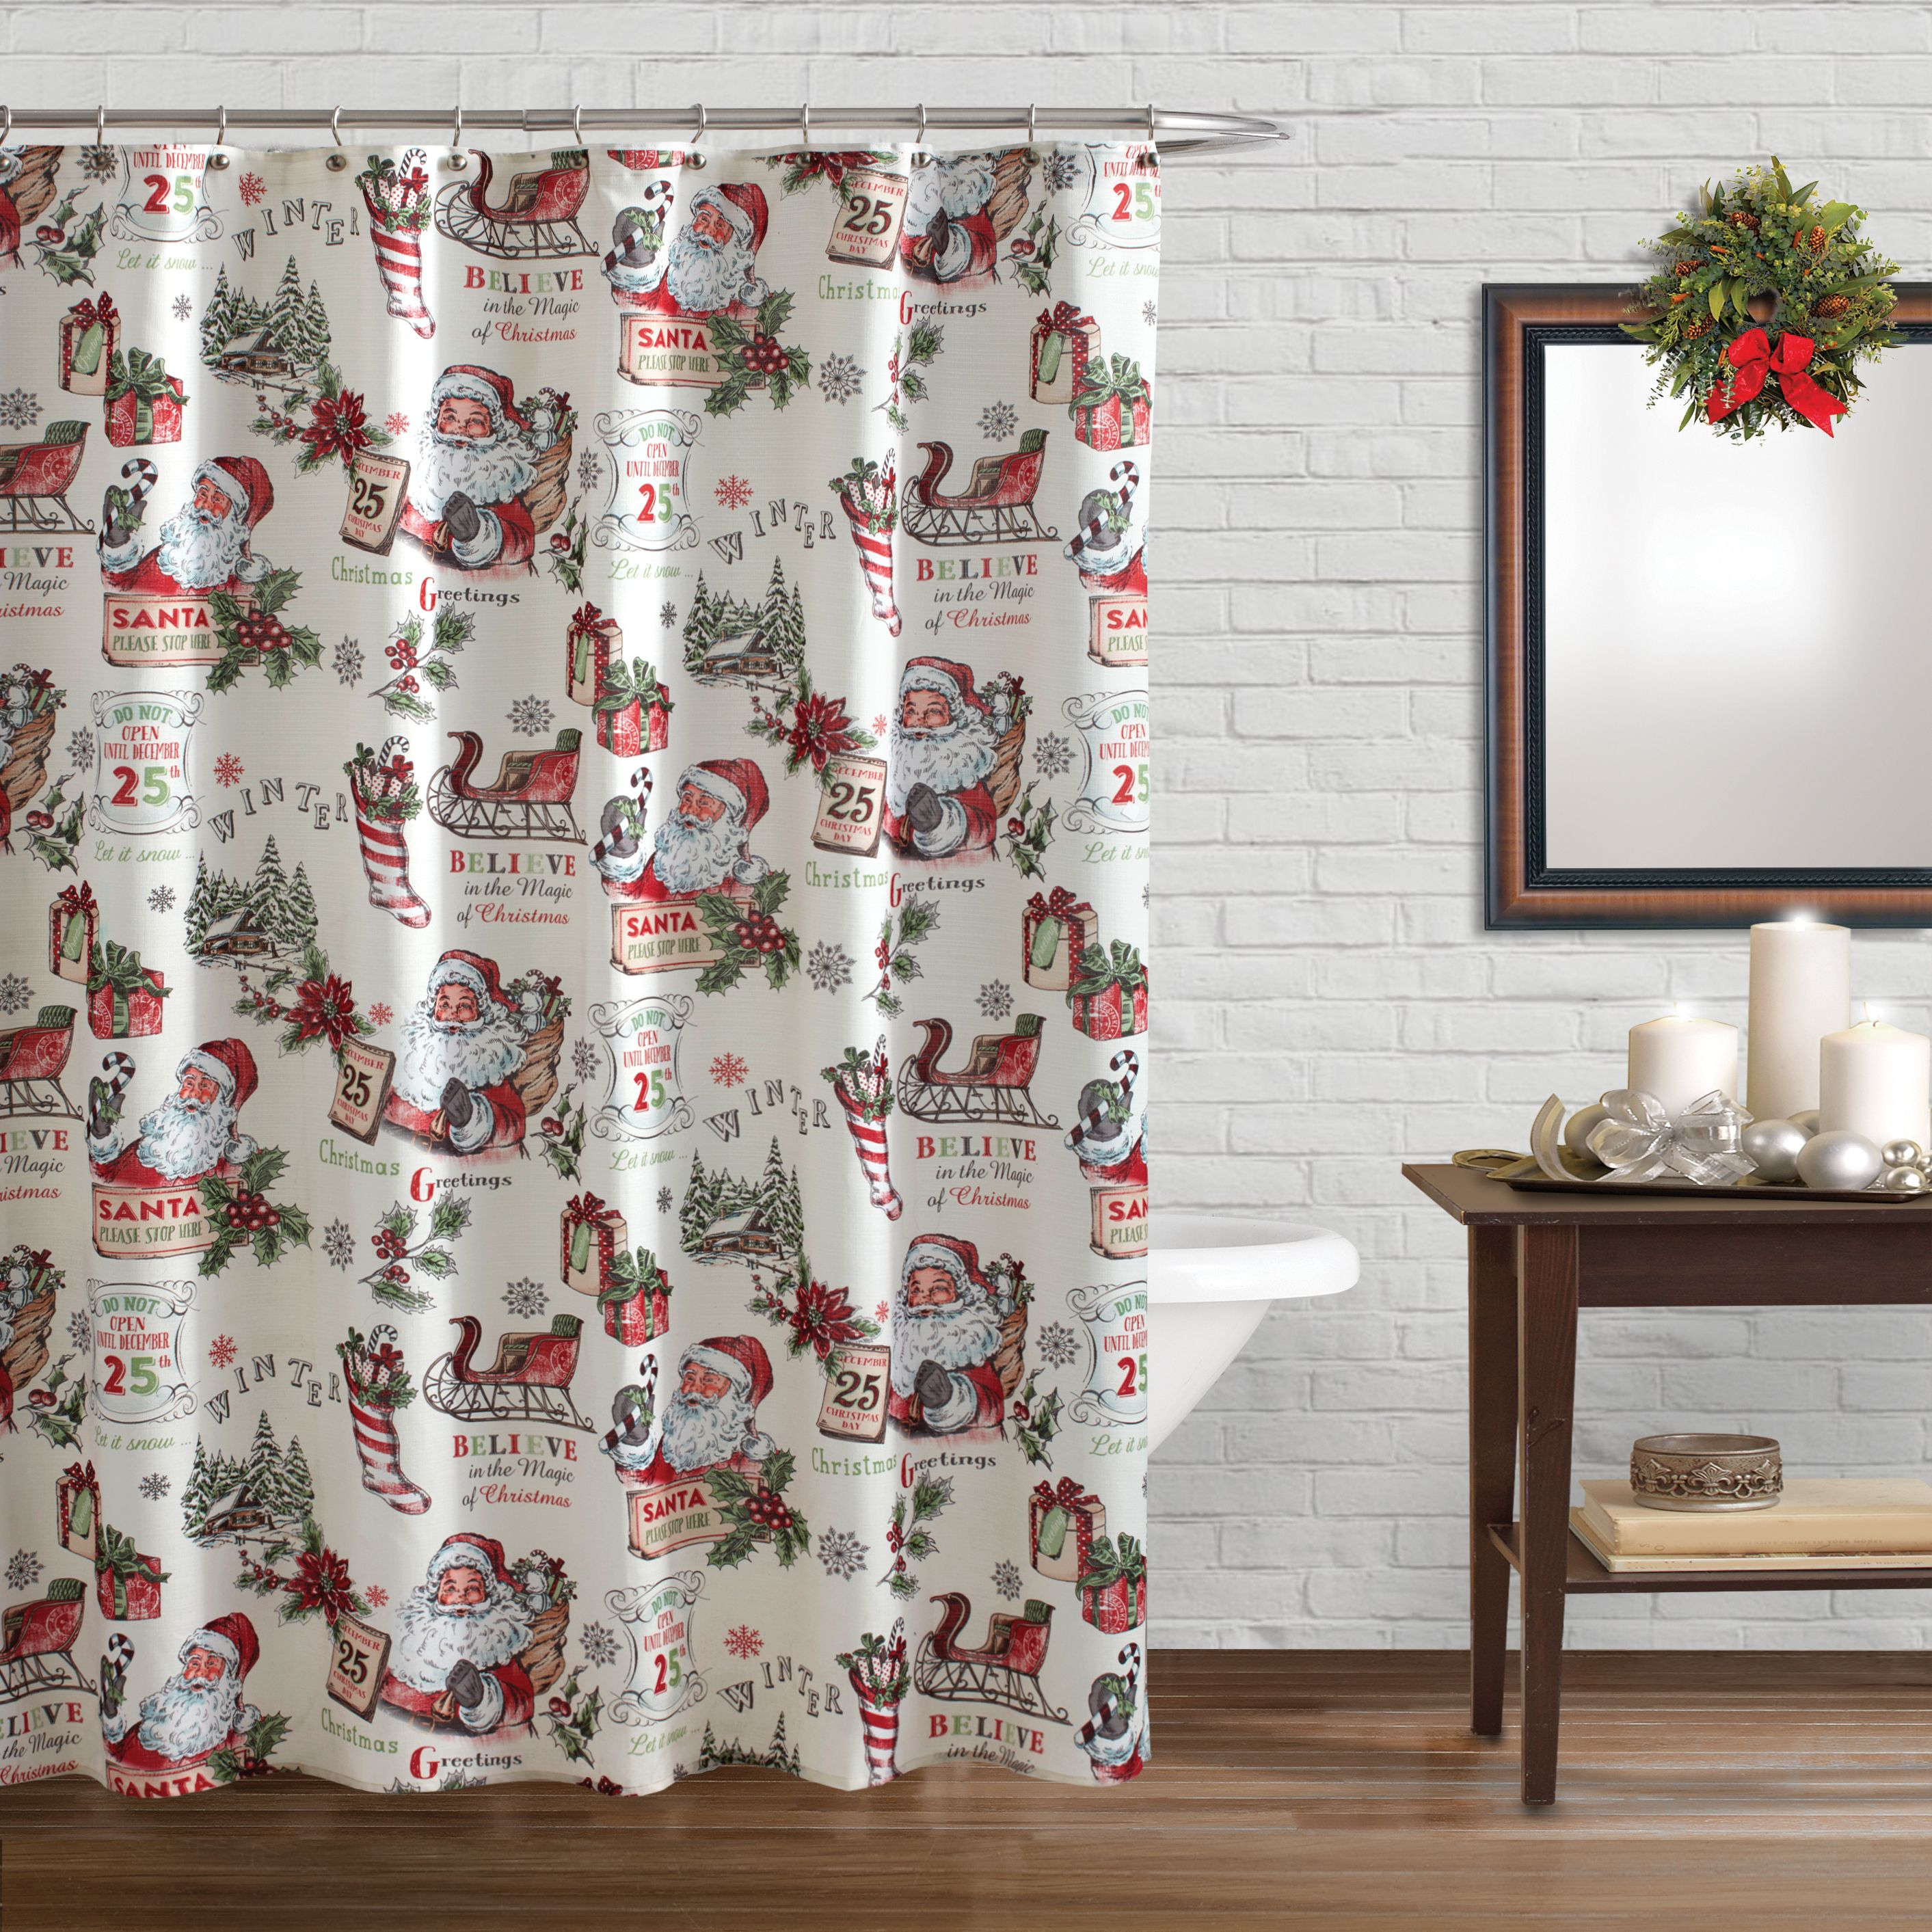 Bring Retro Style And Holiday Cheer To Your Bathroom With This